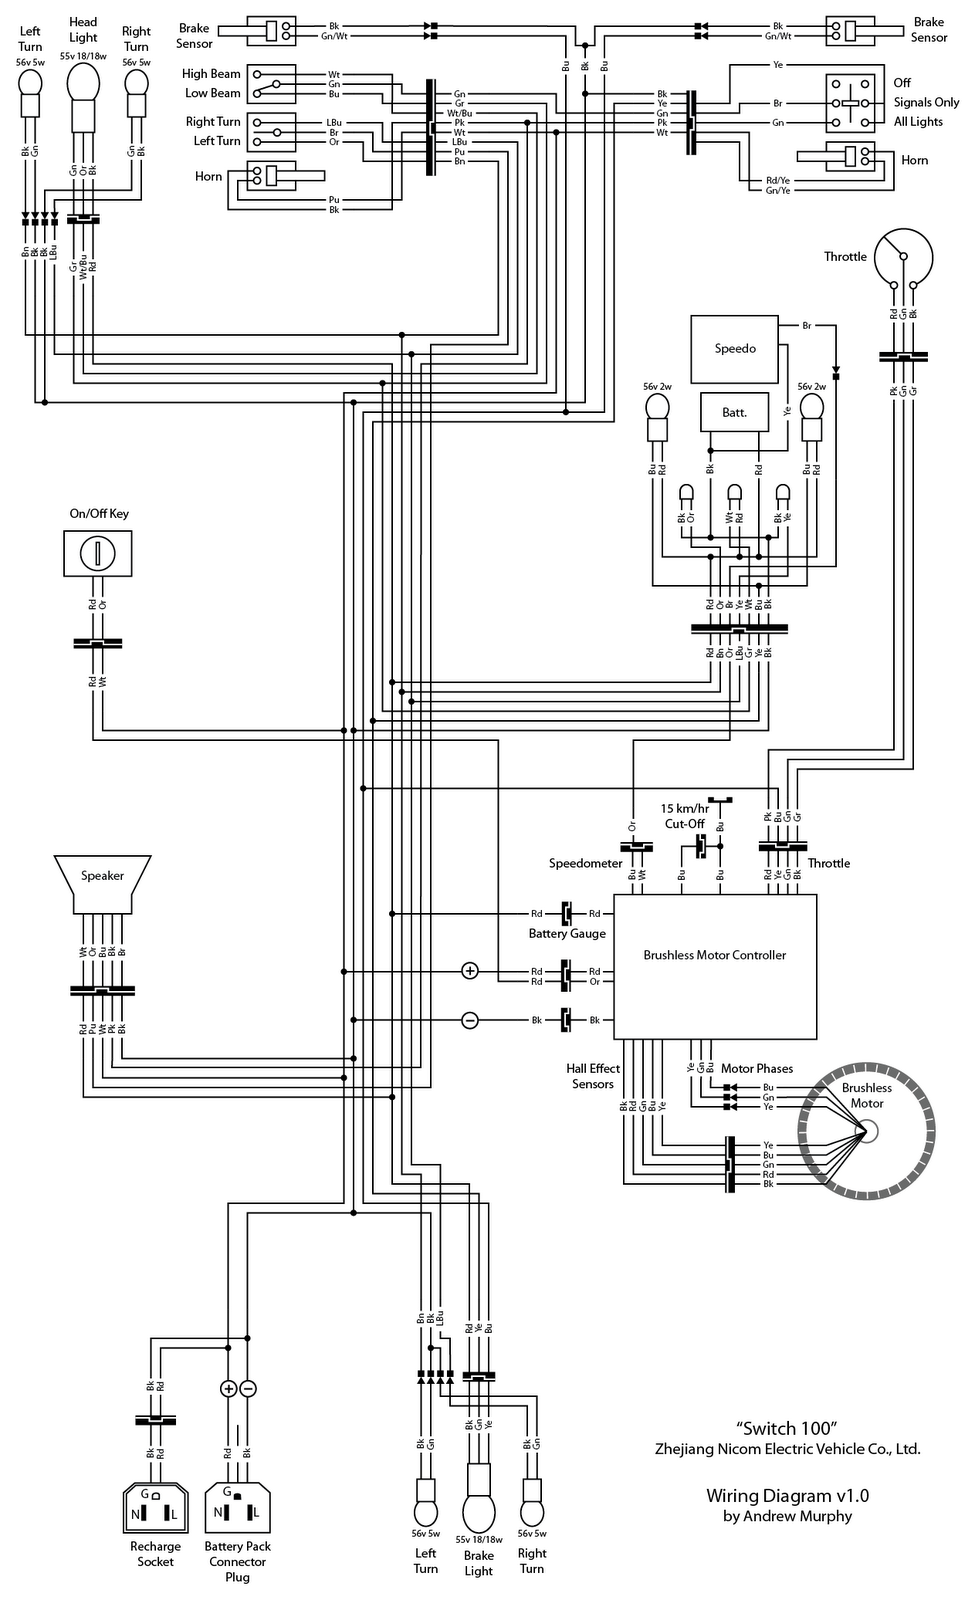 Datsun 1200 Wiring Diagram